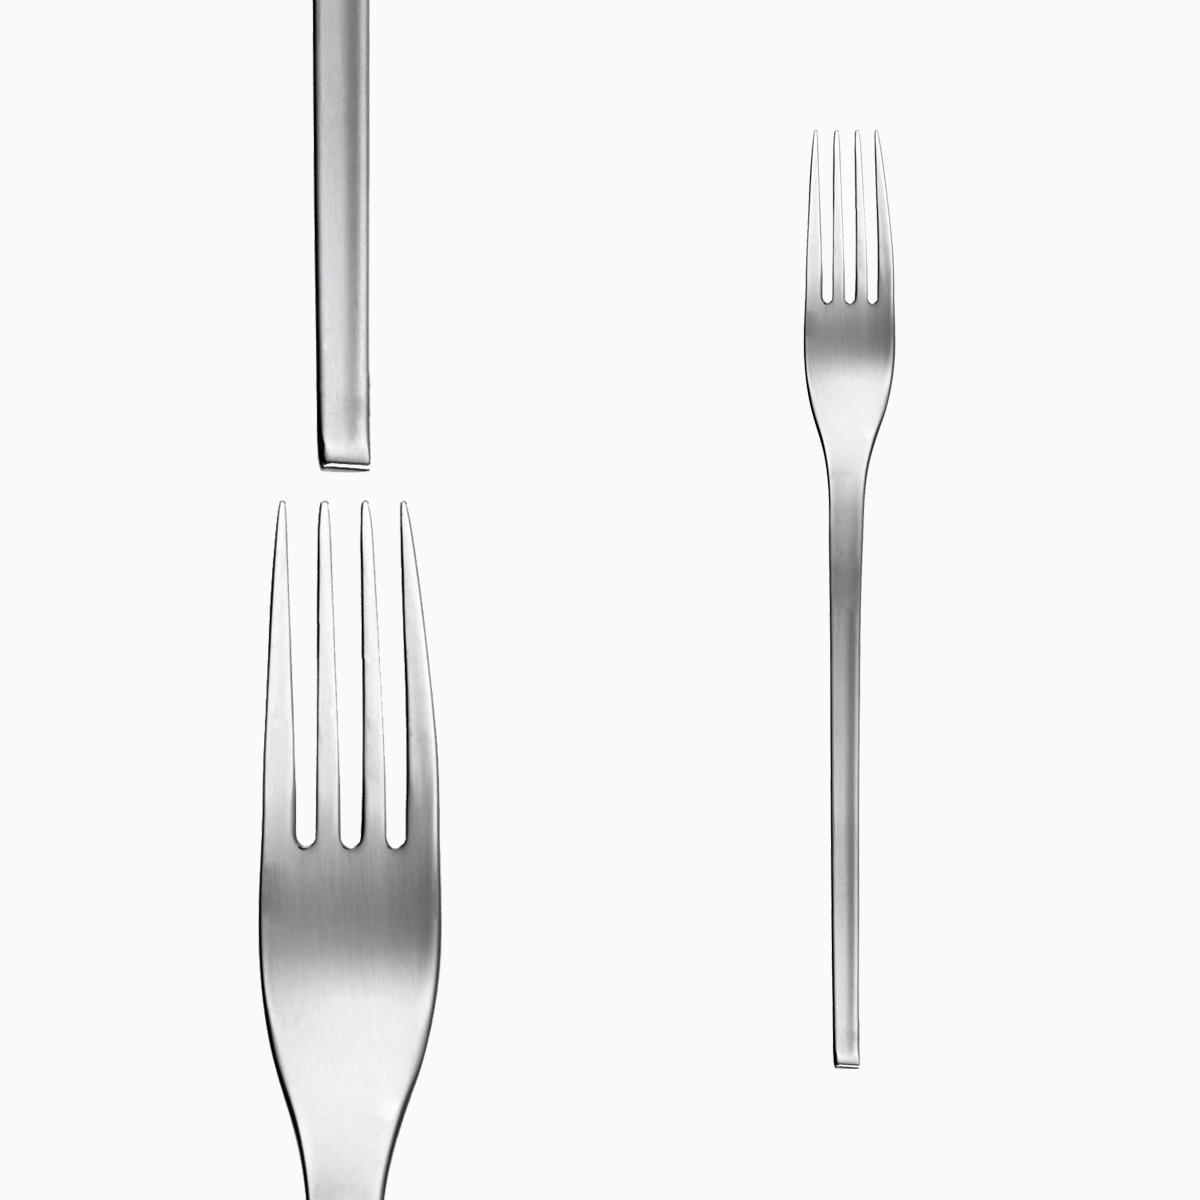 Table fork - Shanghai